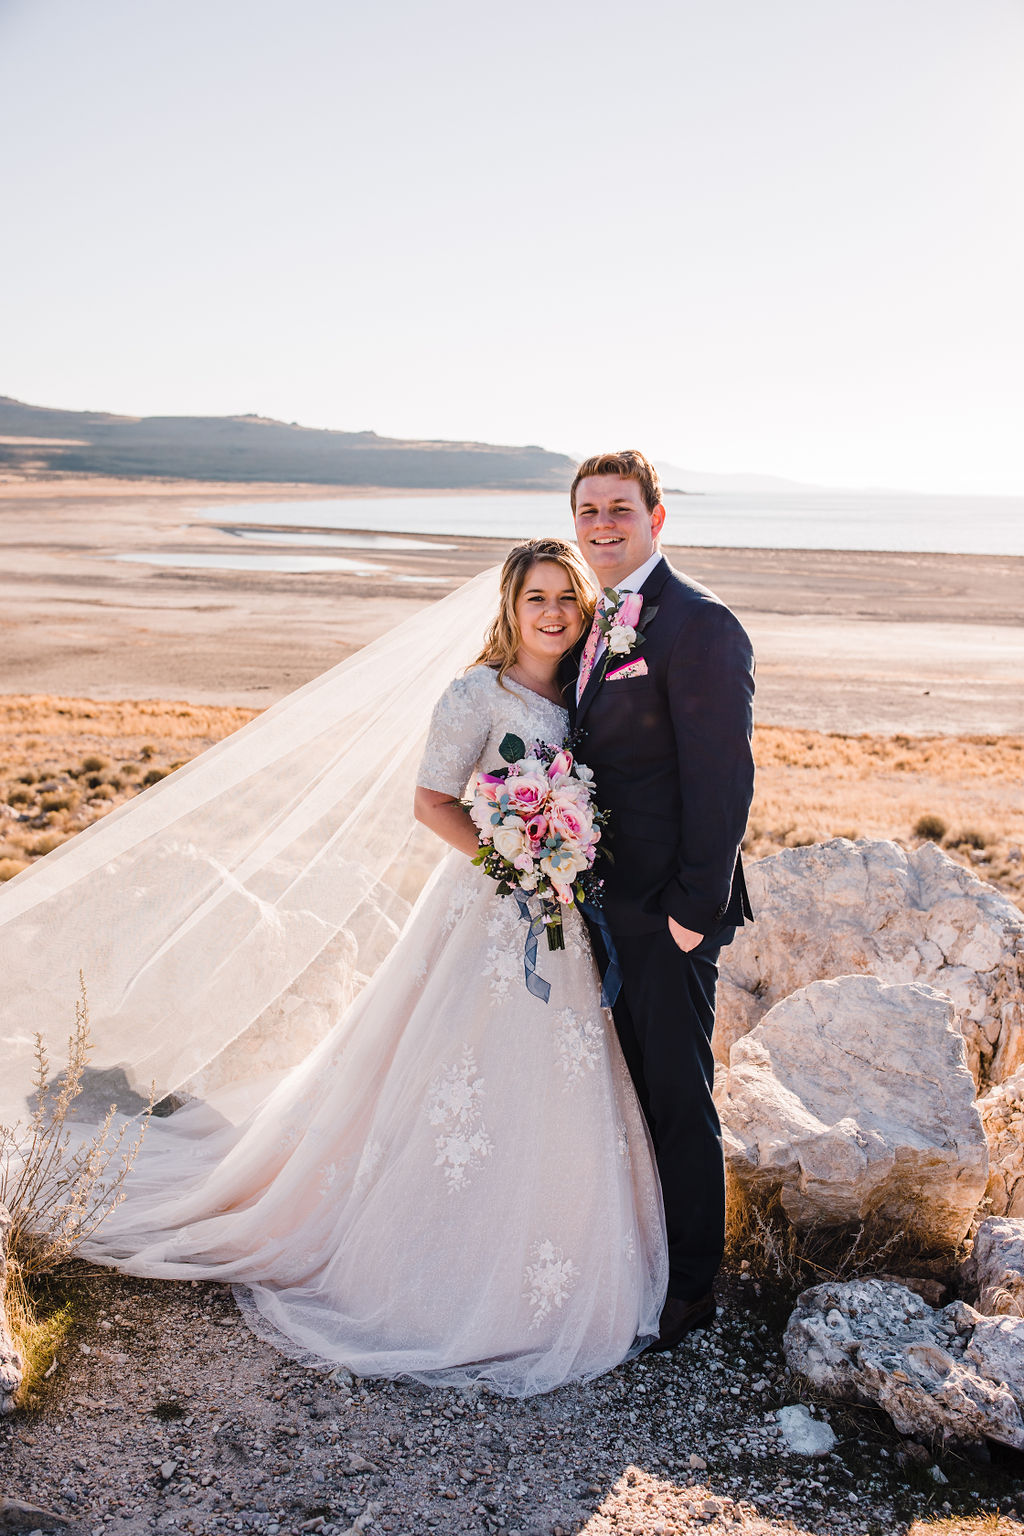 long veil lace wedding dress pink bouquet smiling antelope island great salt lake